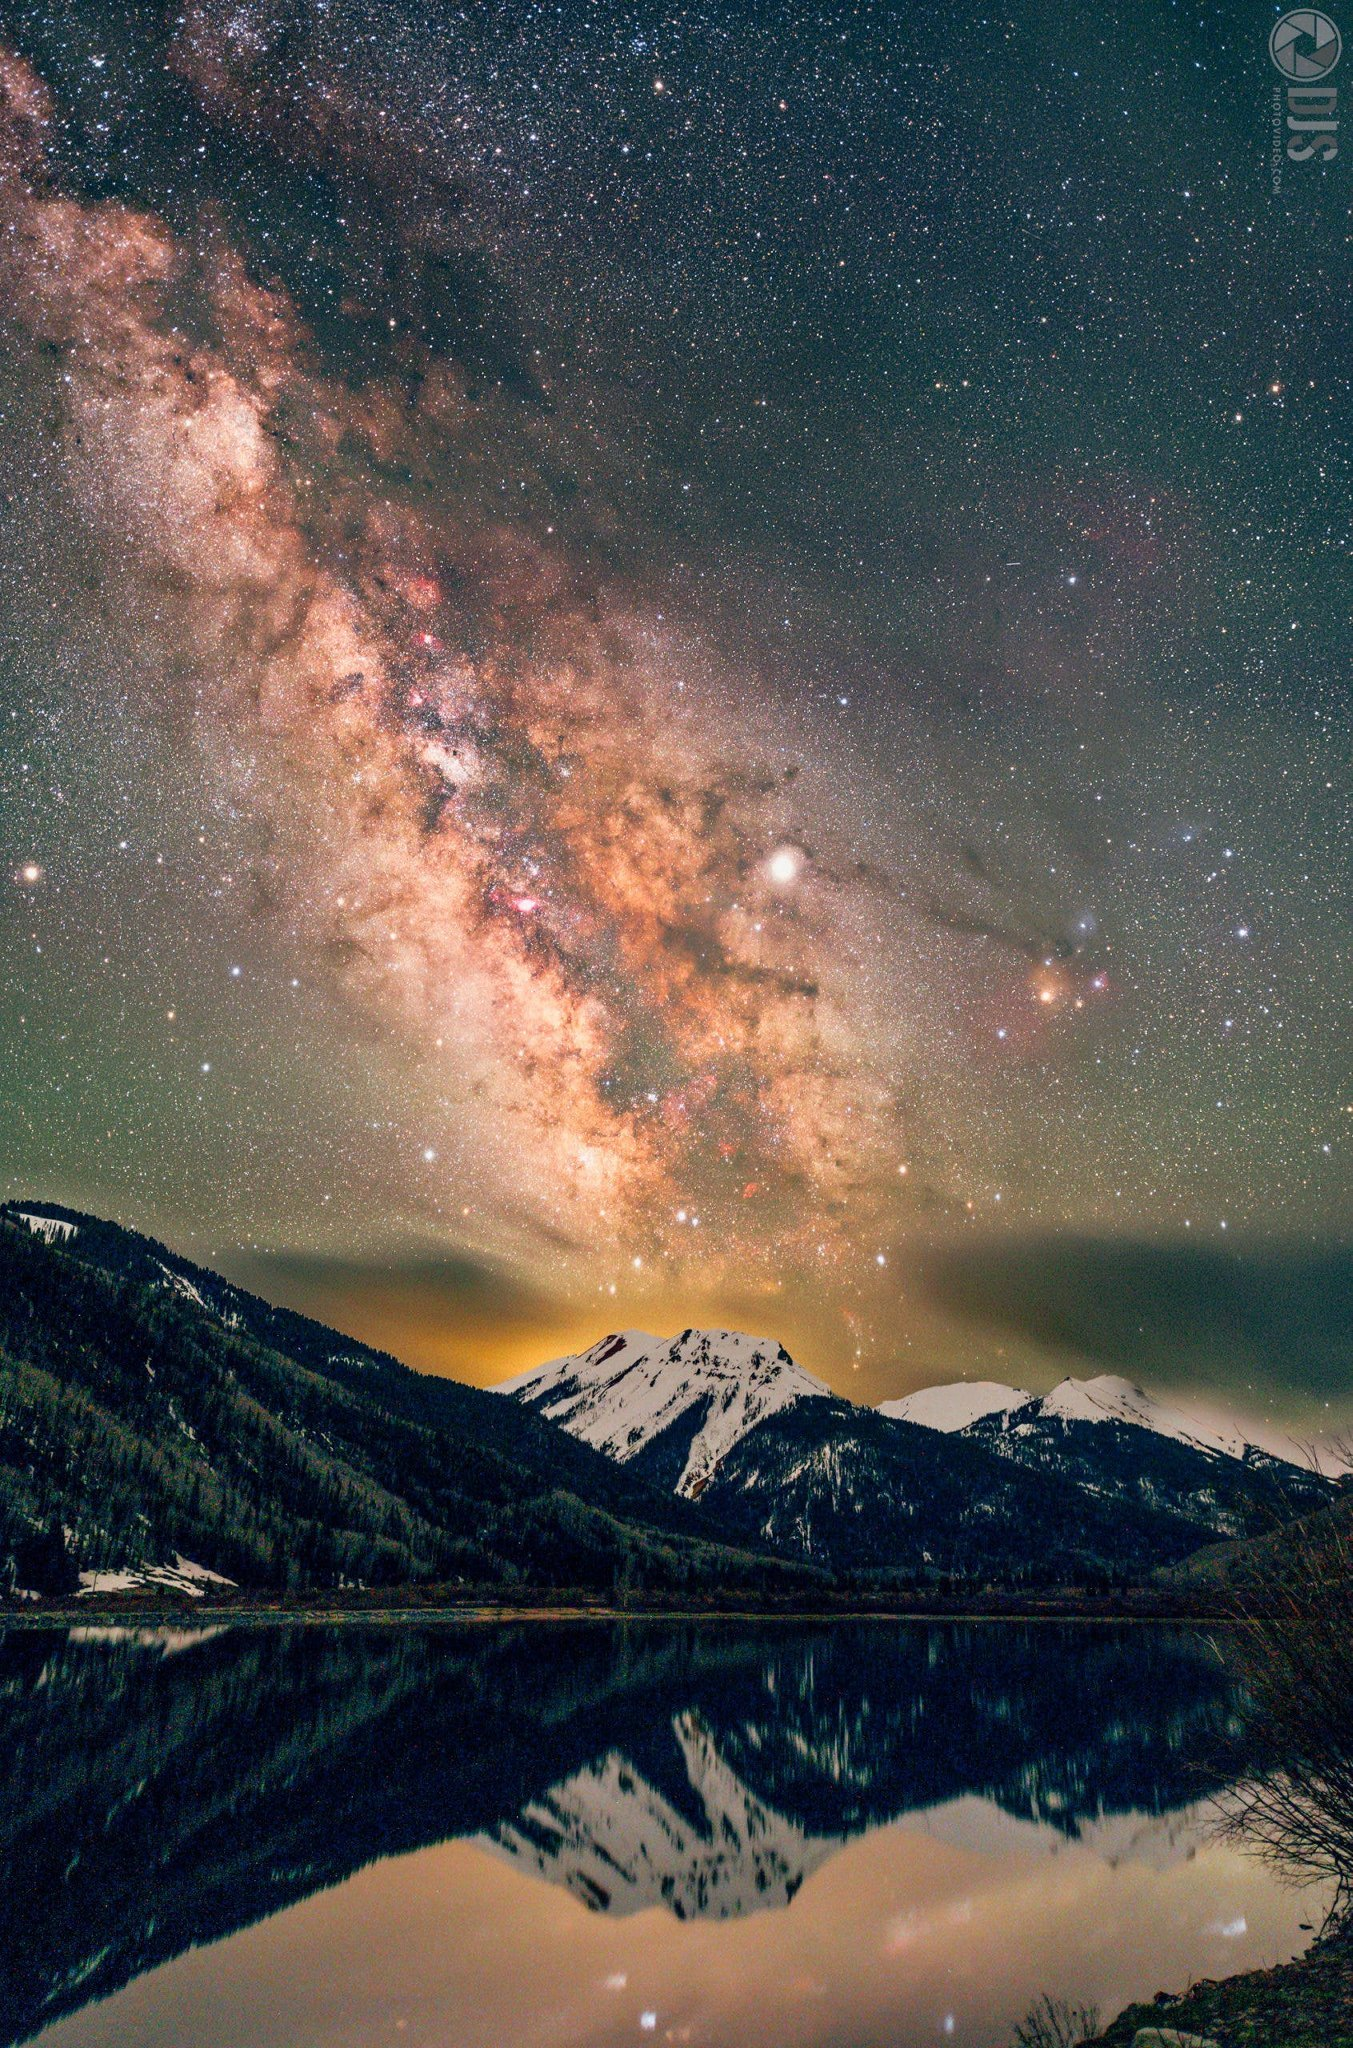 Into Astrophotography? You'll Enjoy What These Photographers Did